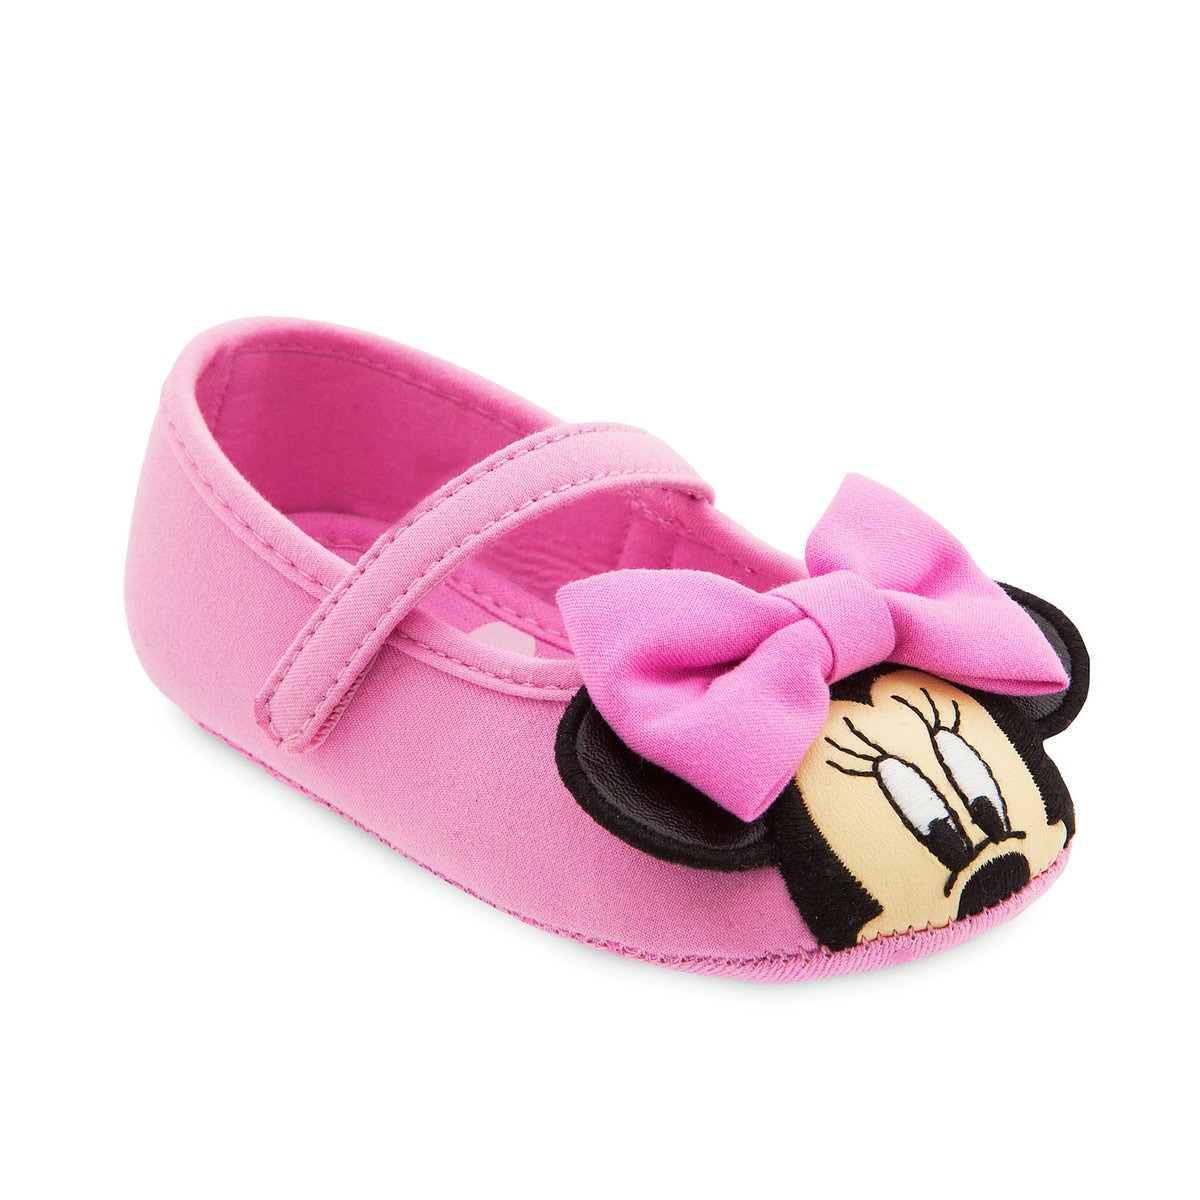 1eb07b5c9fe Product Image of Minnie Mouse Costume Shoes for Baby - Pink   1